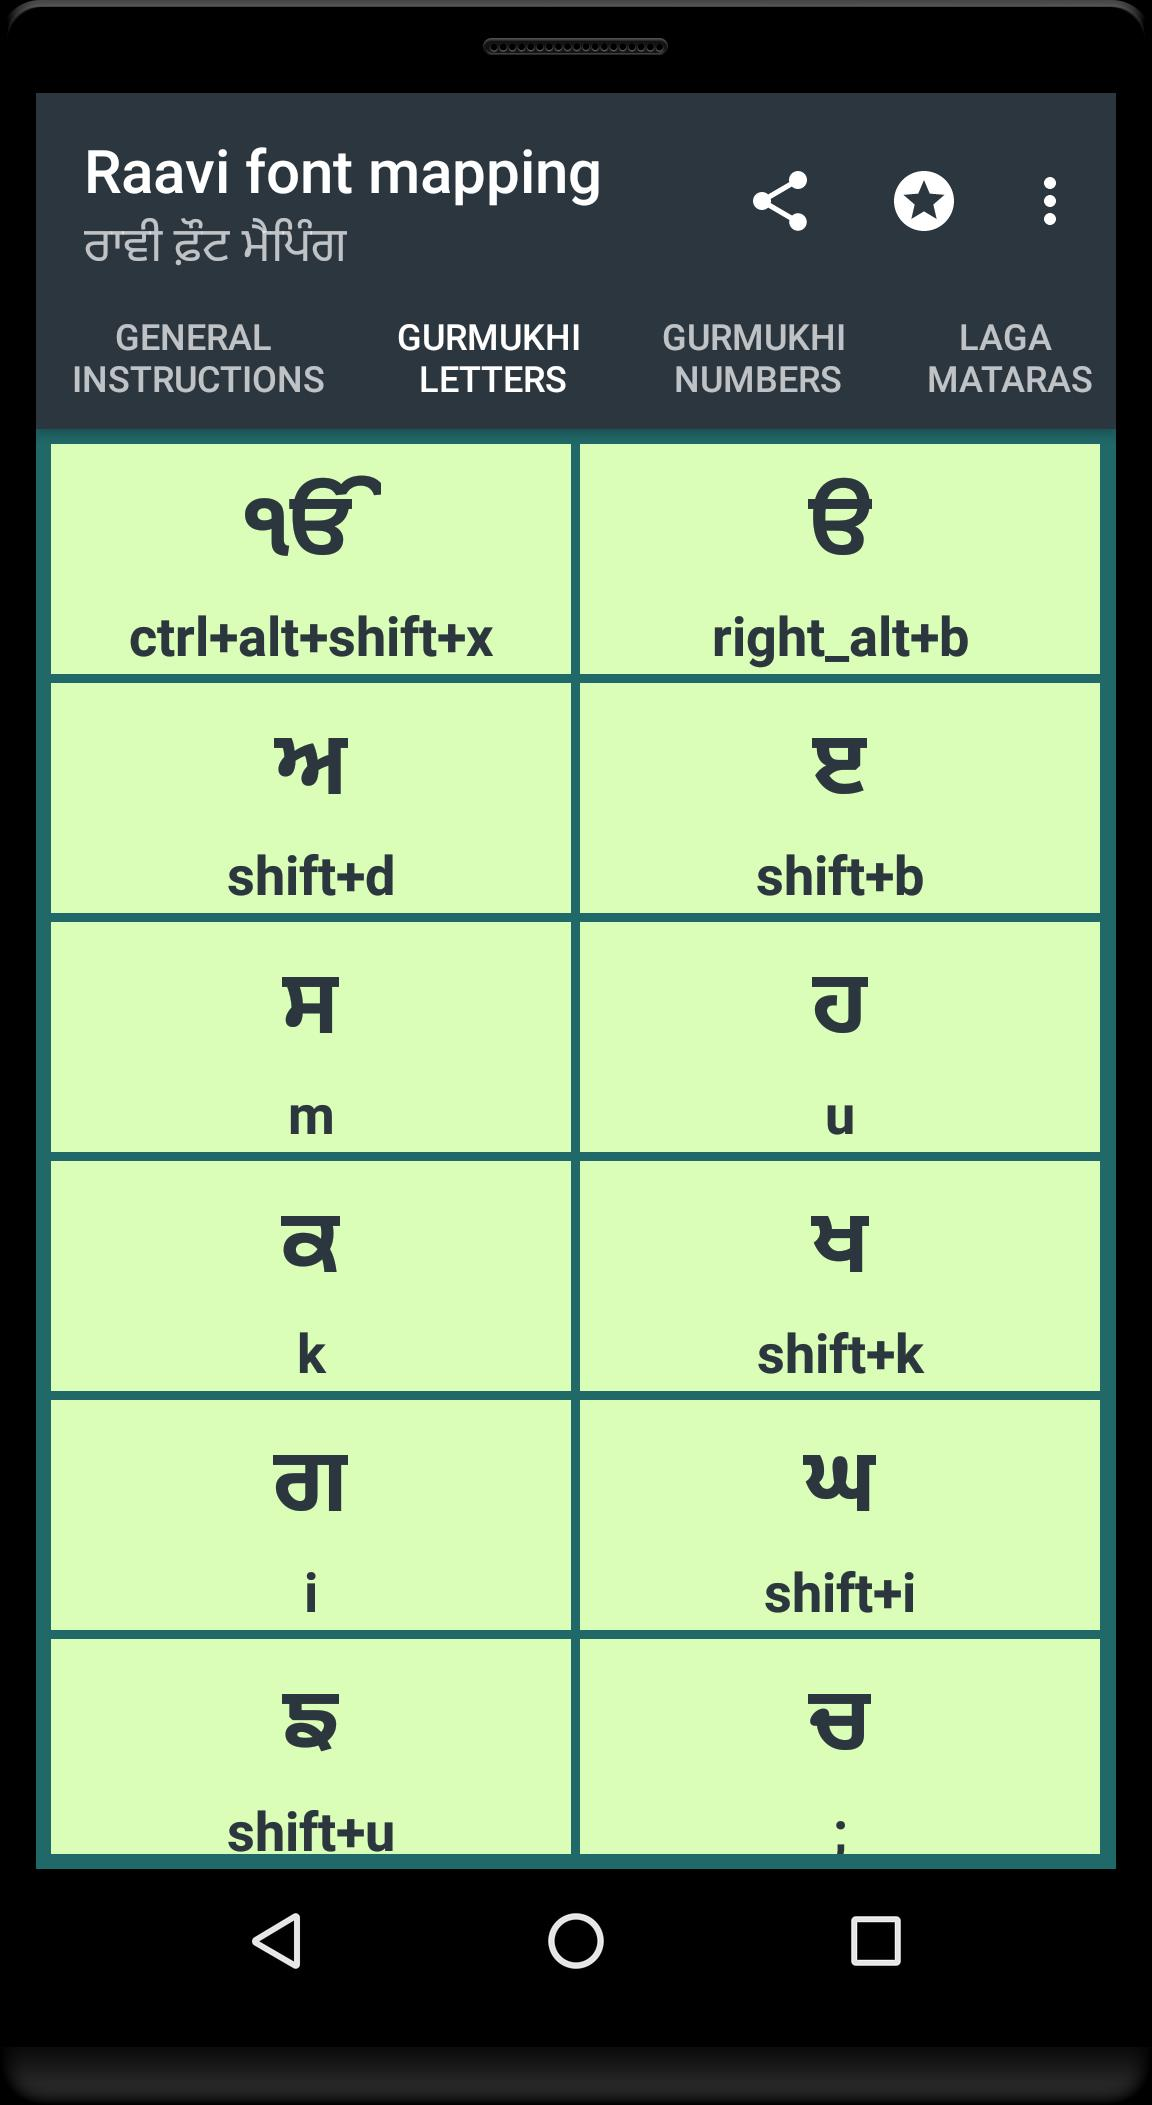 Raavi Font Keyboard Mapping for Android - APK Download on